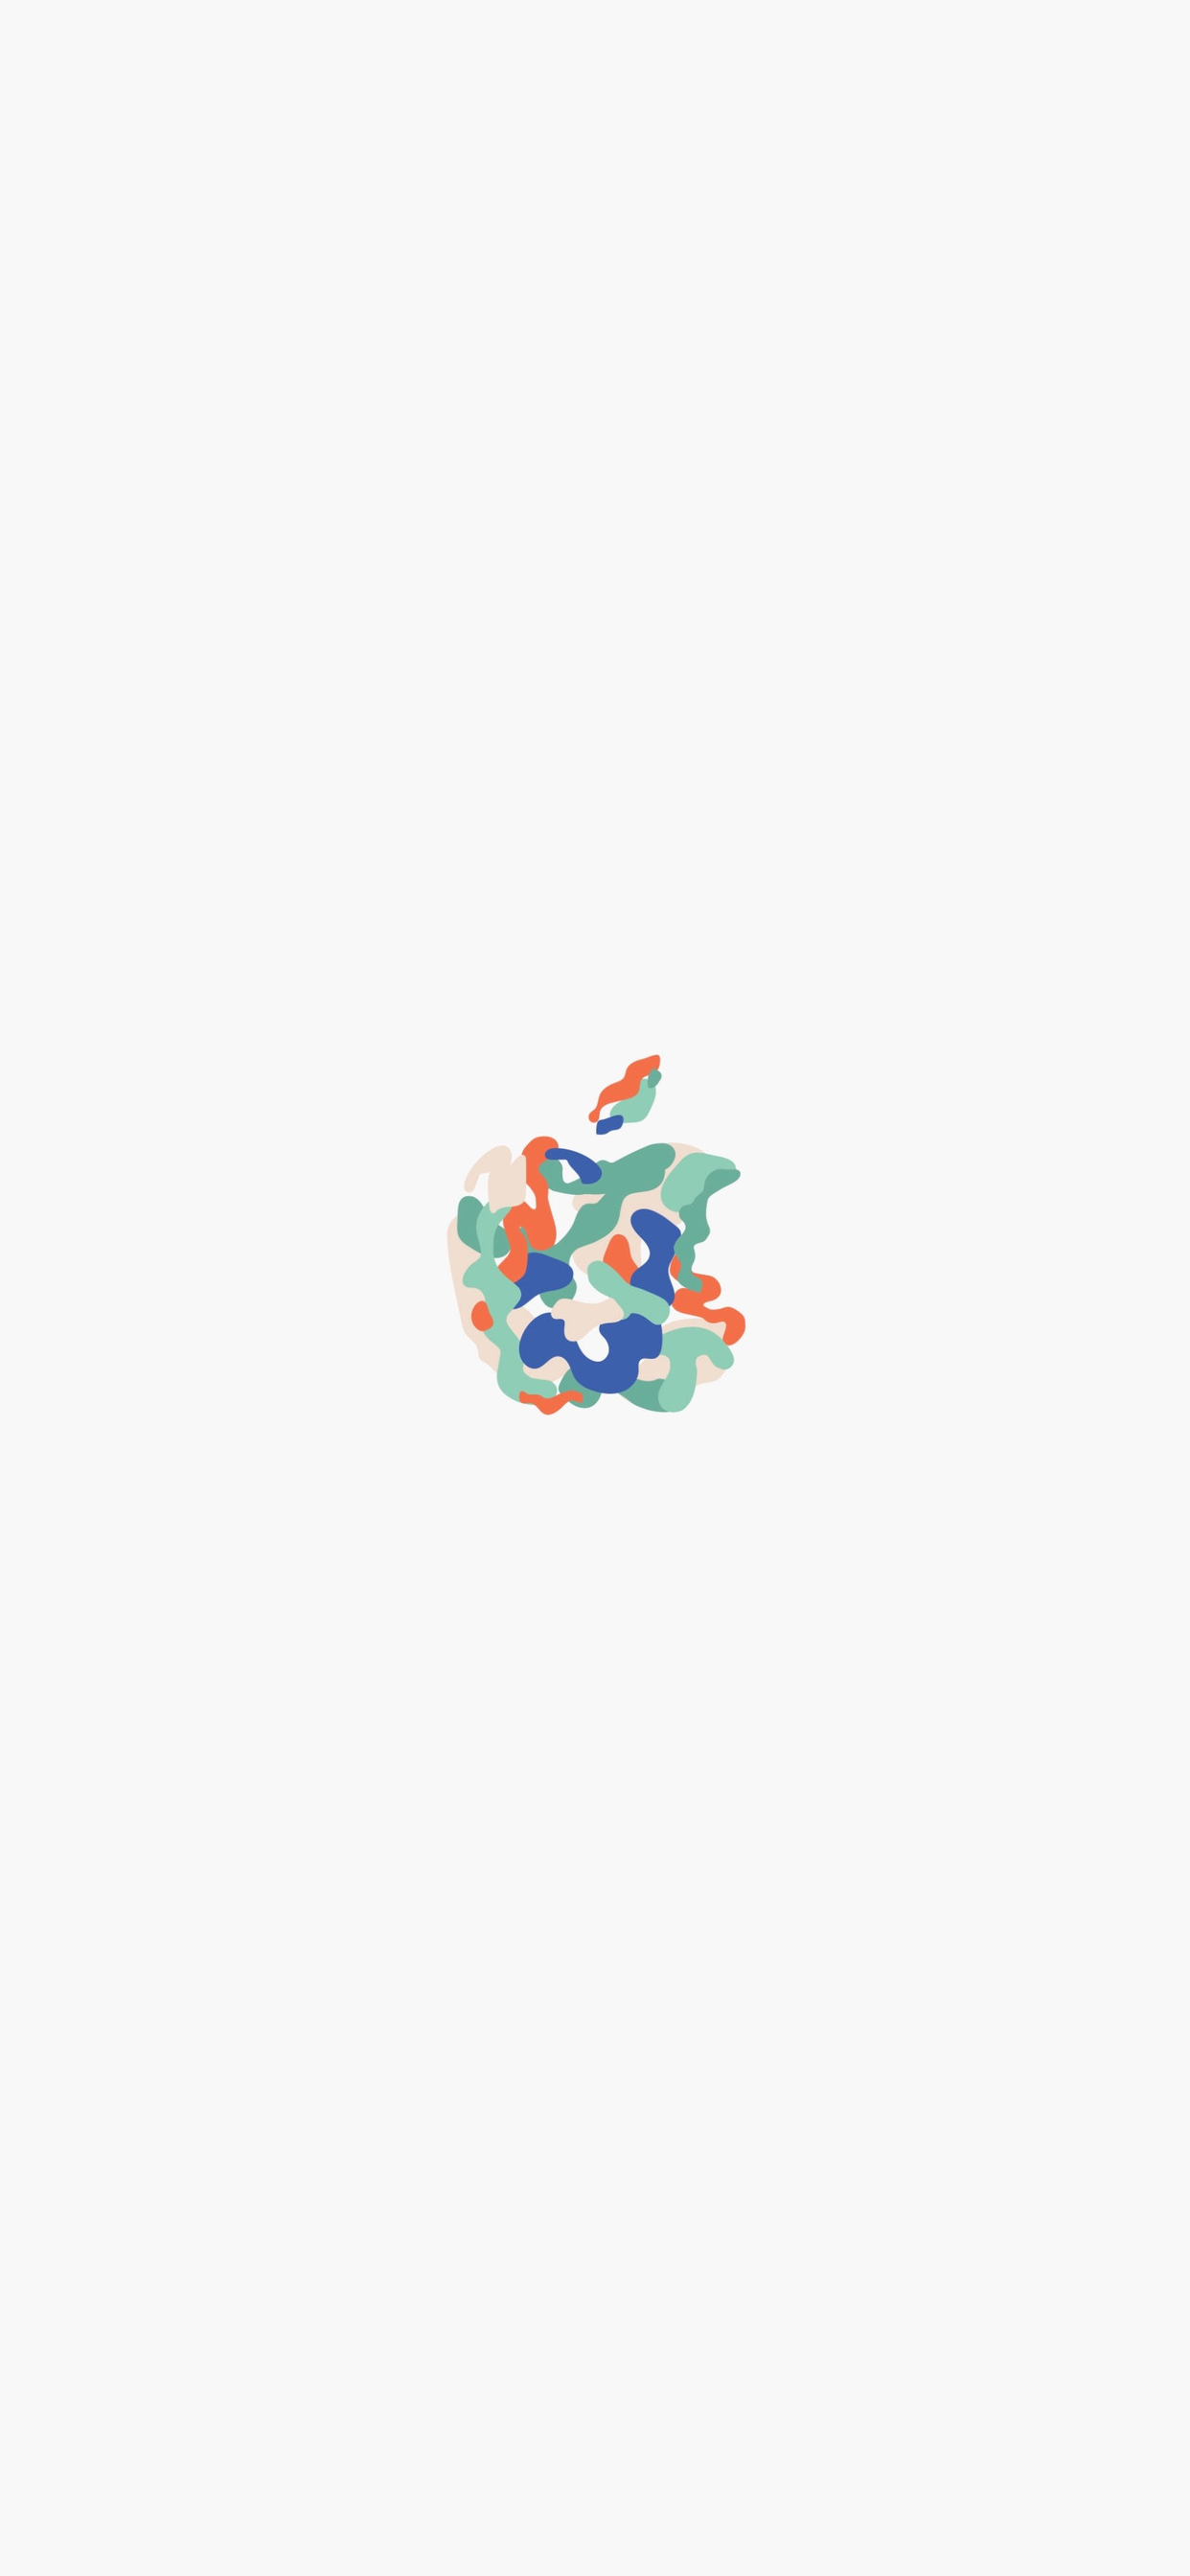 24 Apple logo